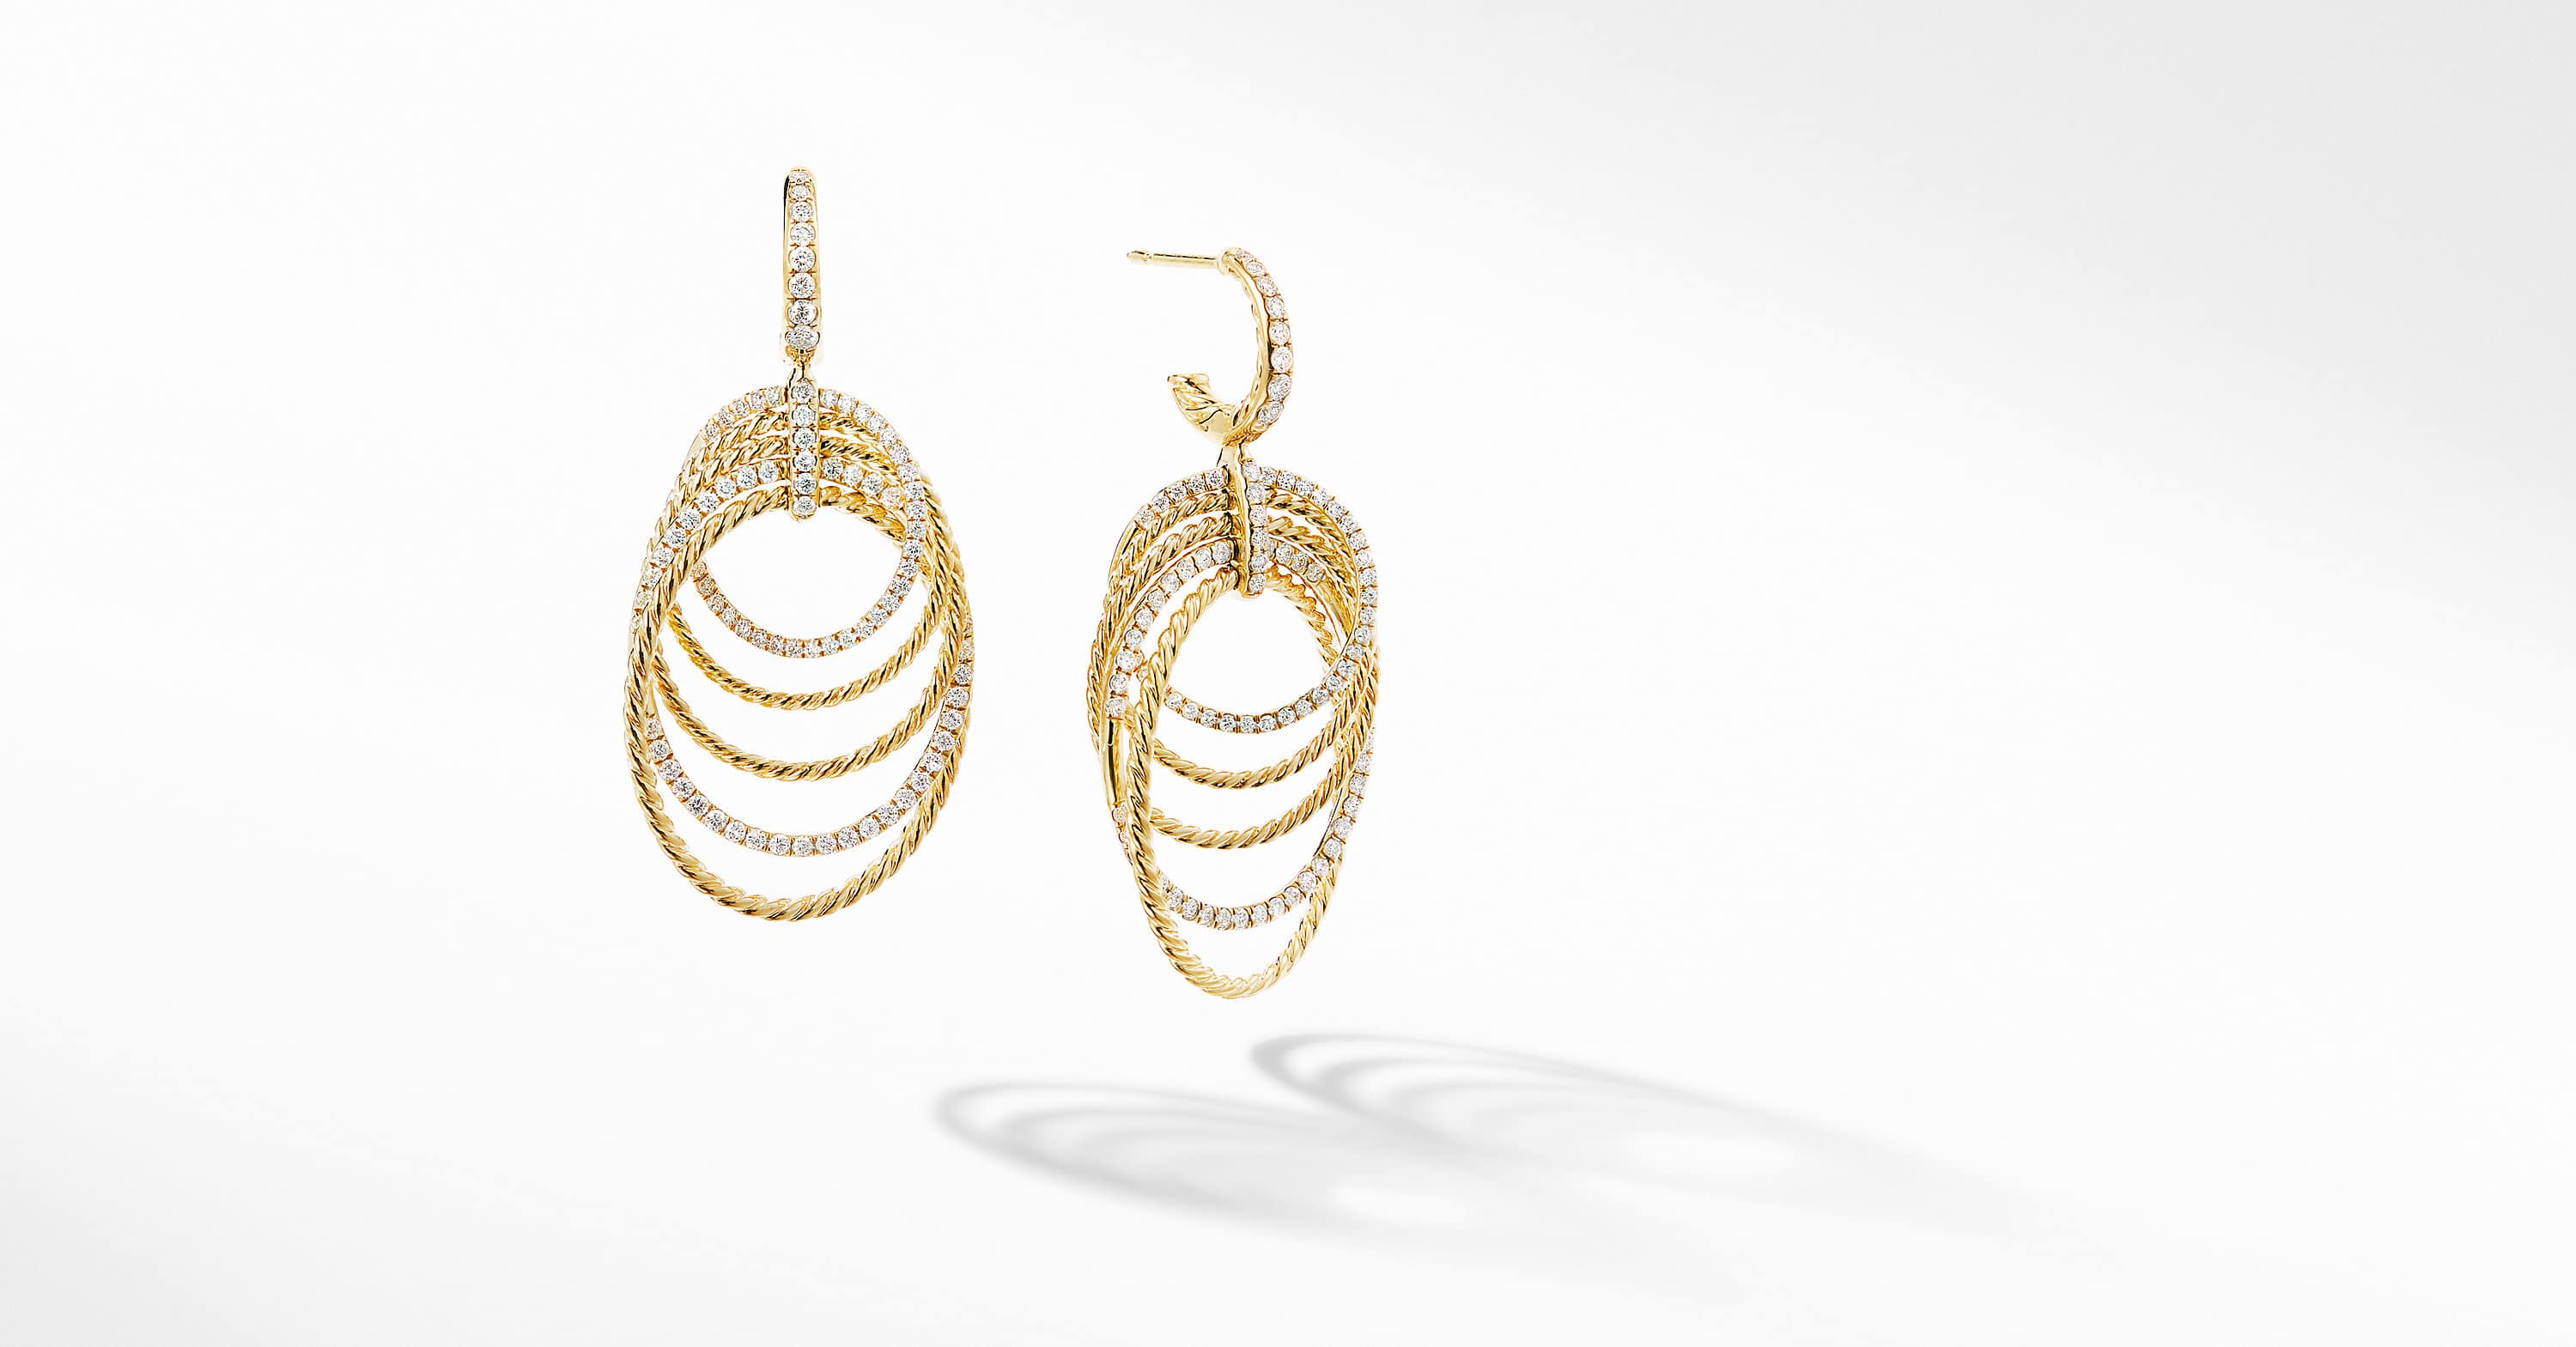 DY Origami Drop Earrings in 18K Yellow Gold with Diamonds